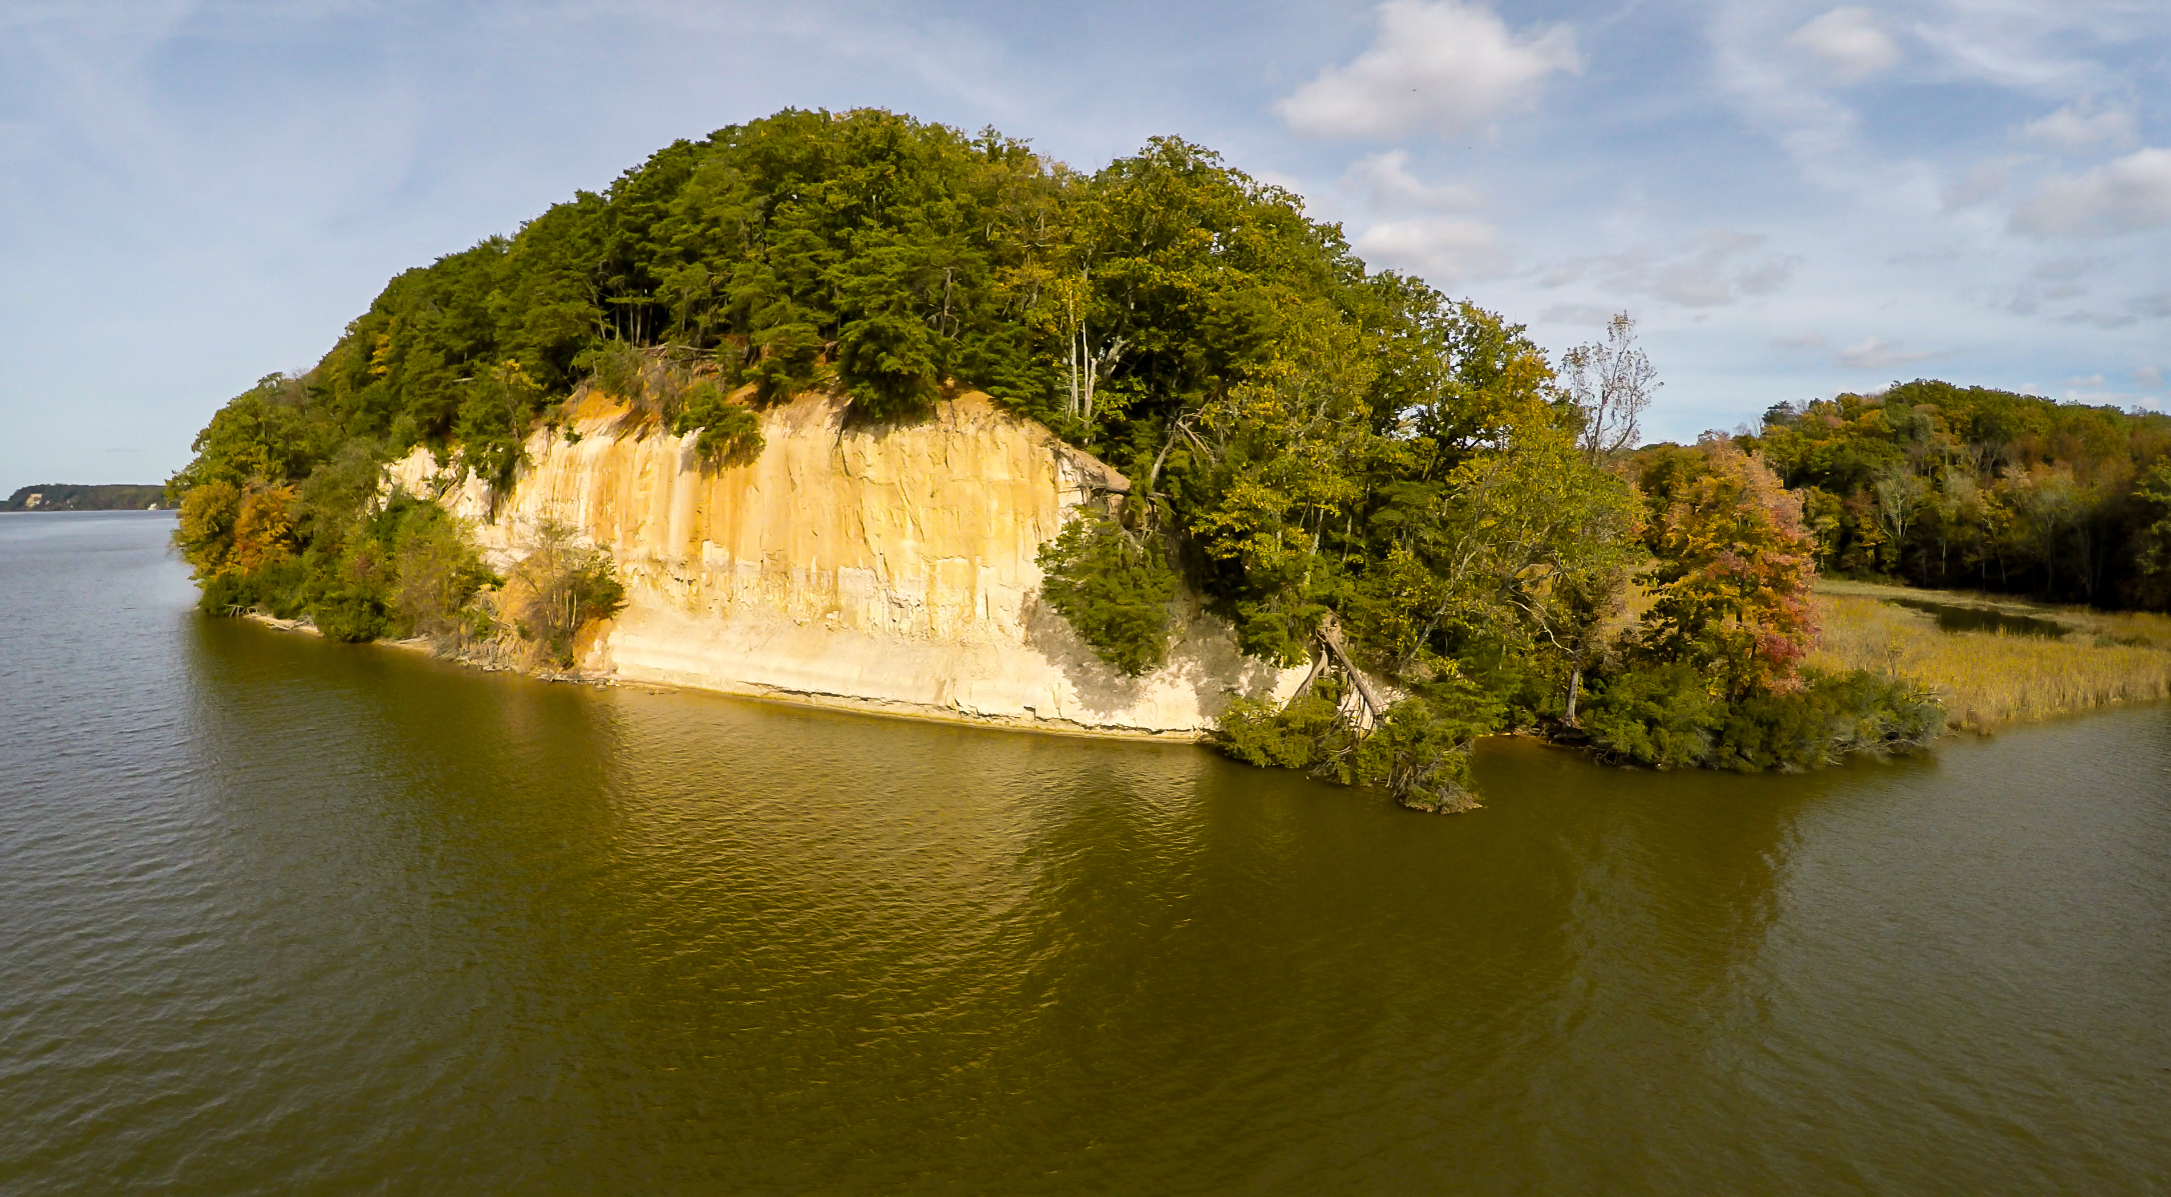 This cliff has one of the largest density of Bald Eagles on the East Coast